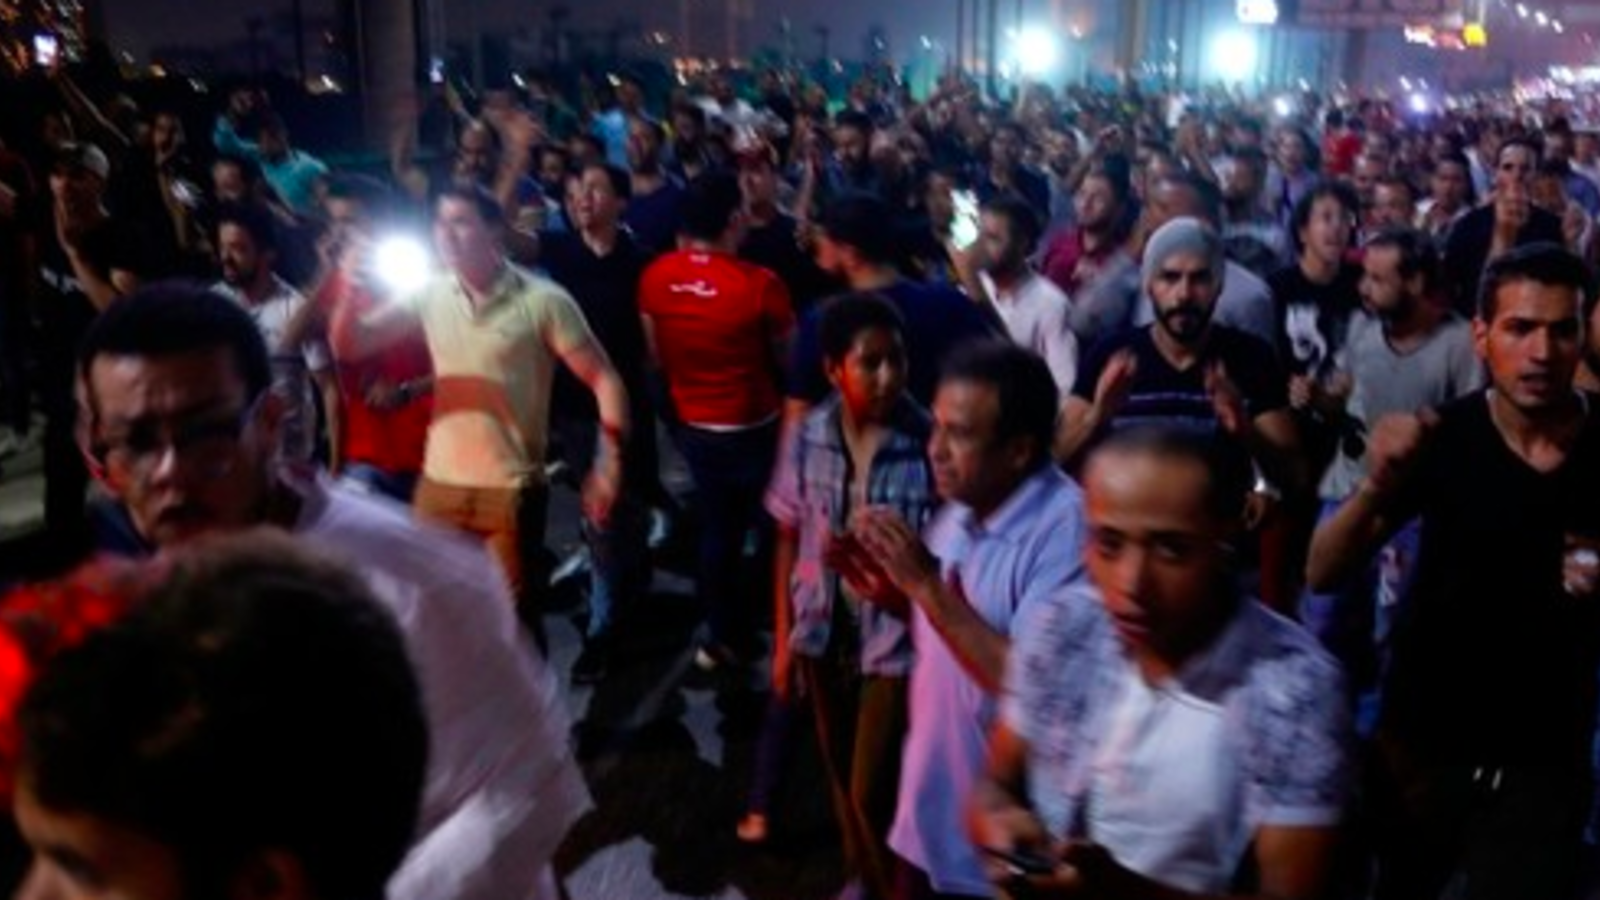 Egyptian protesters shout slogans as they take part in a protest calling for the removal of President Abdel Fattah al-Sisi in Cairo's downtown on September 20, 2019 (AFP Photo)